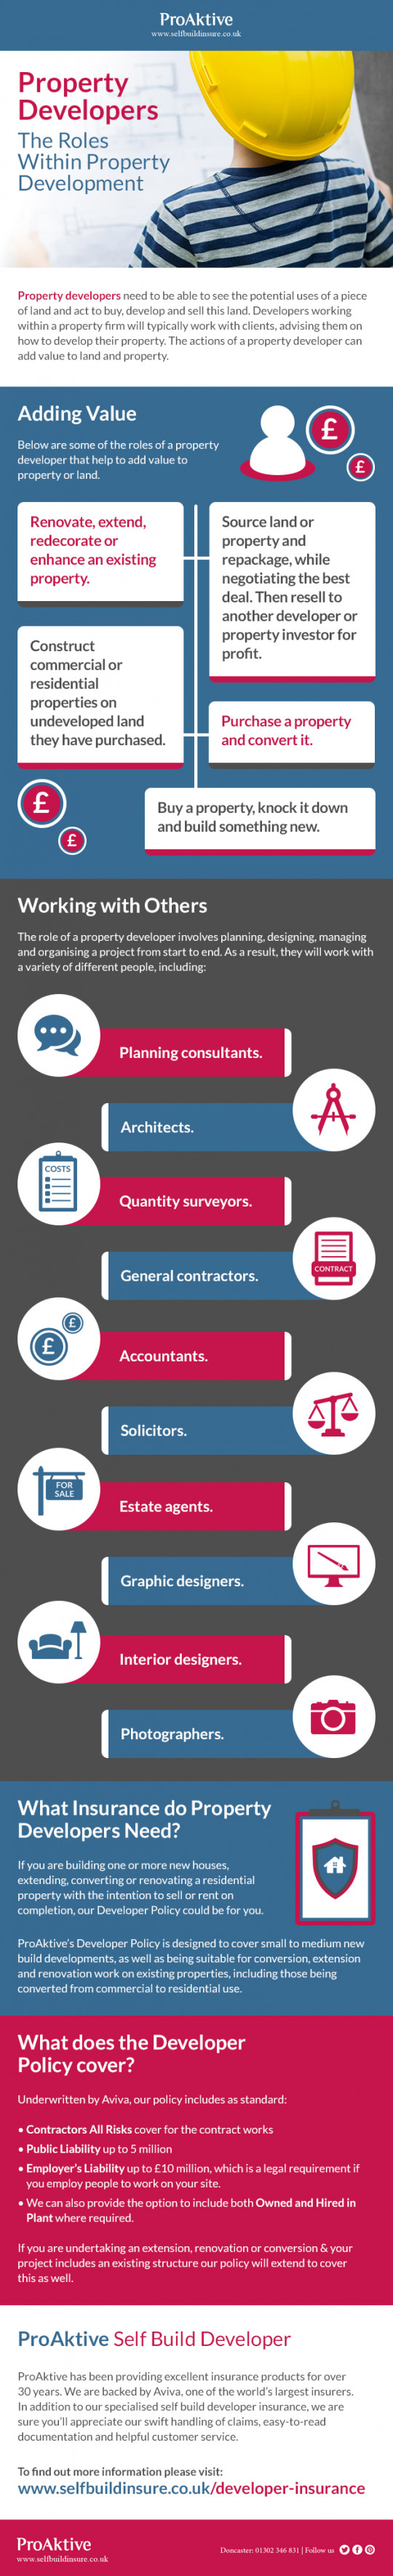 Property Developers: The Roles Within Property Development